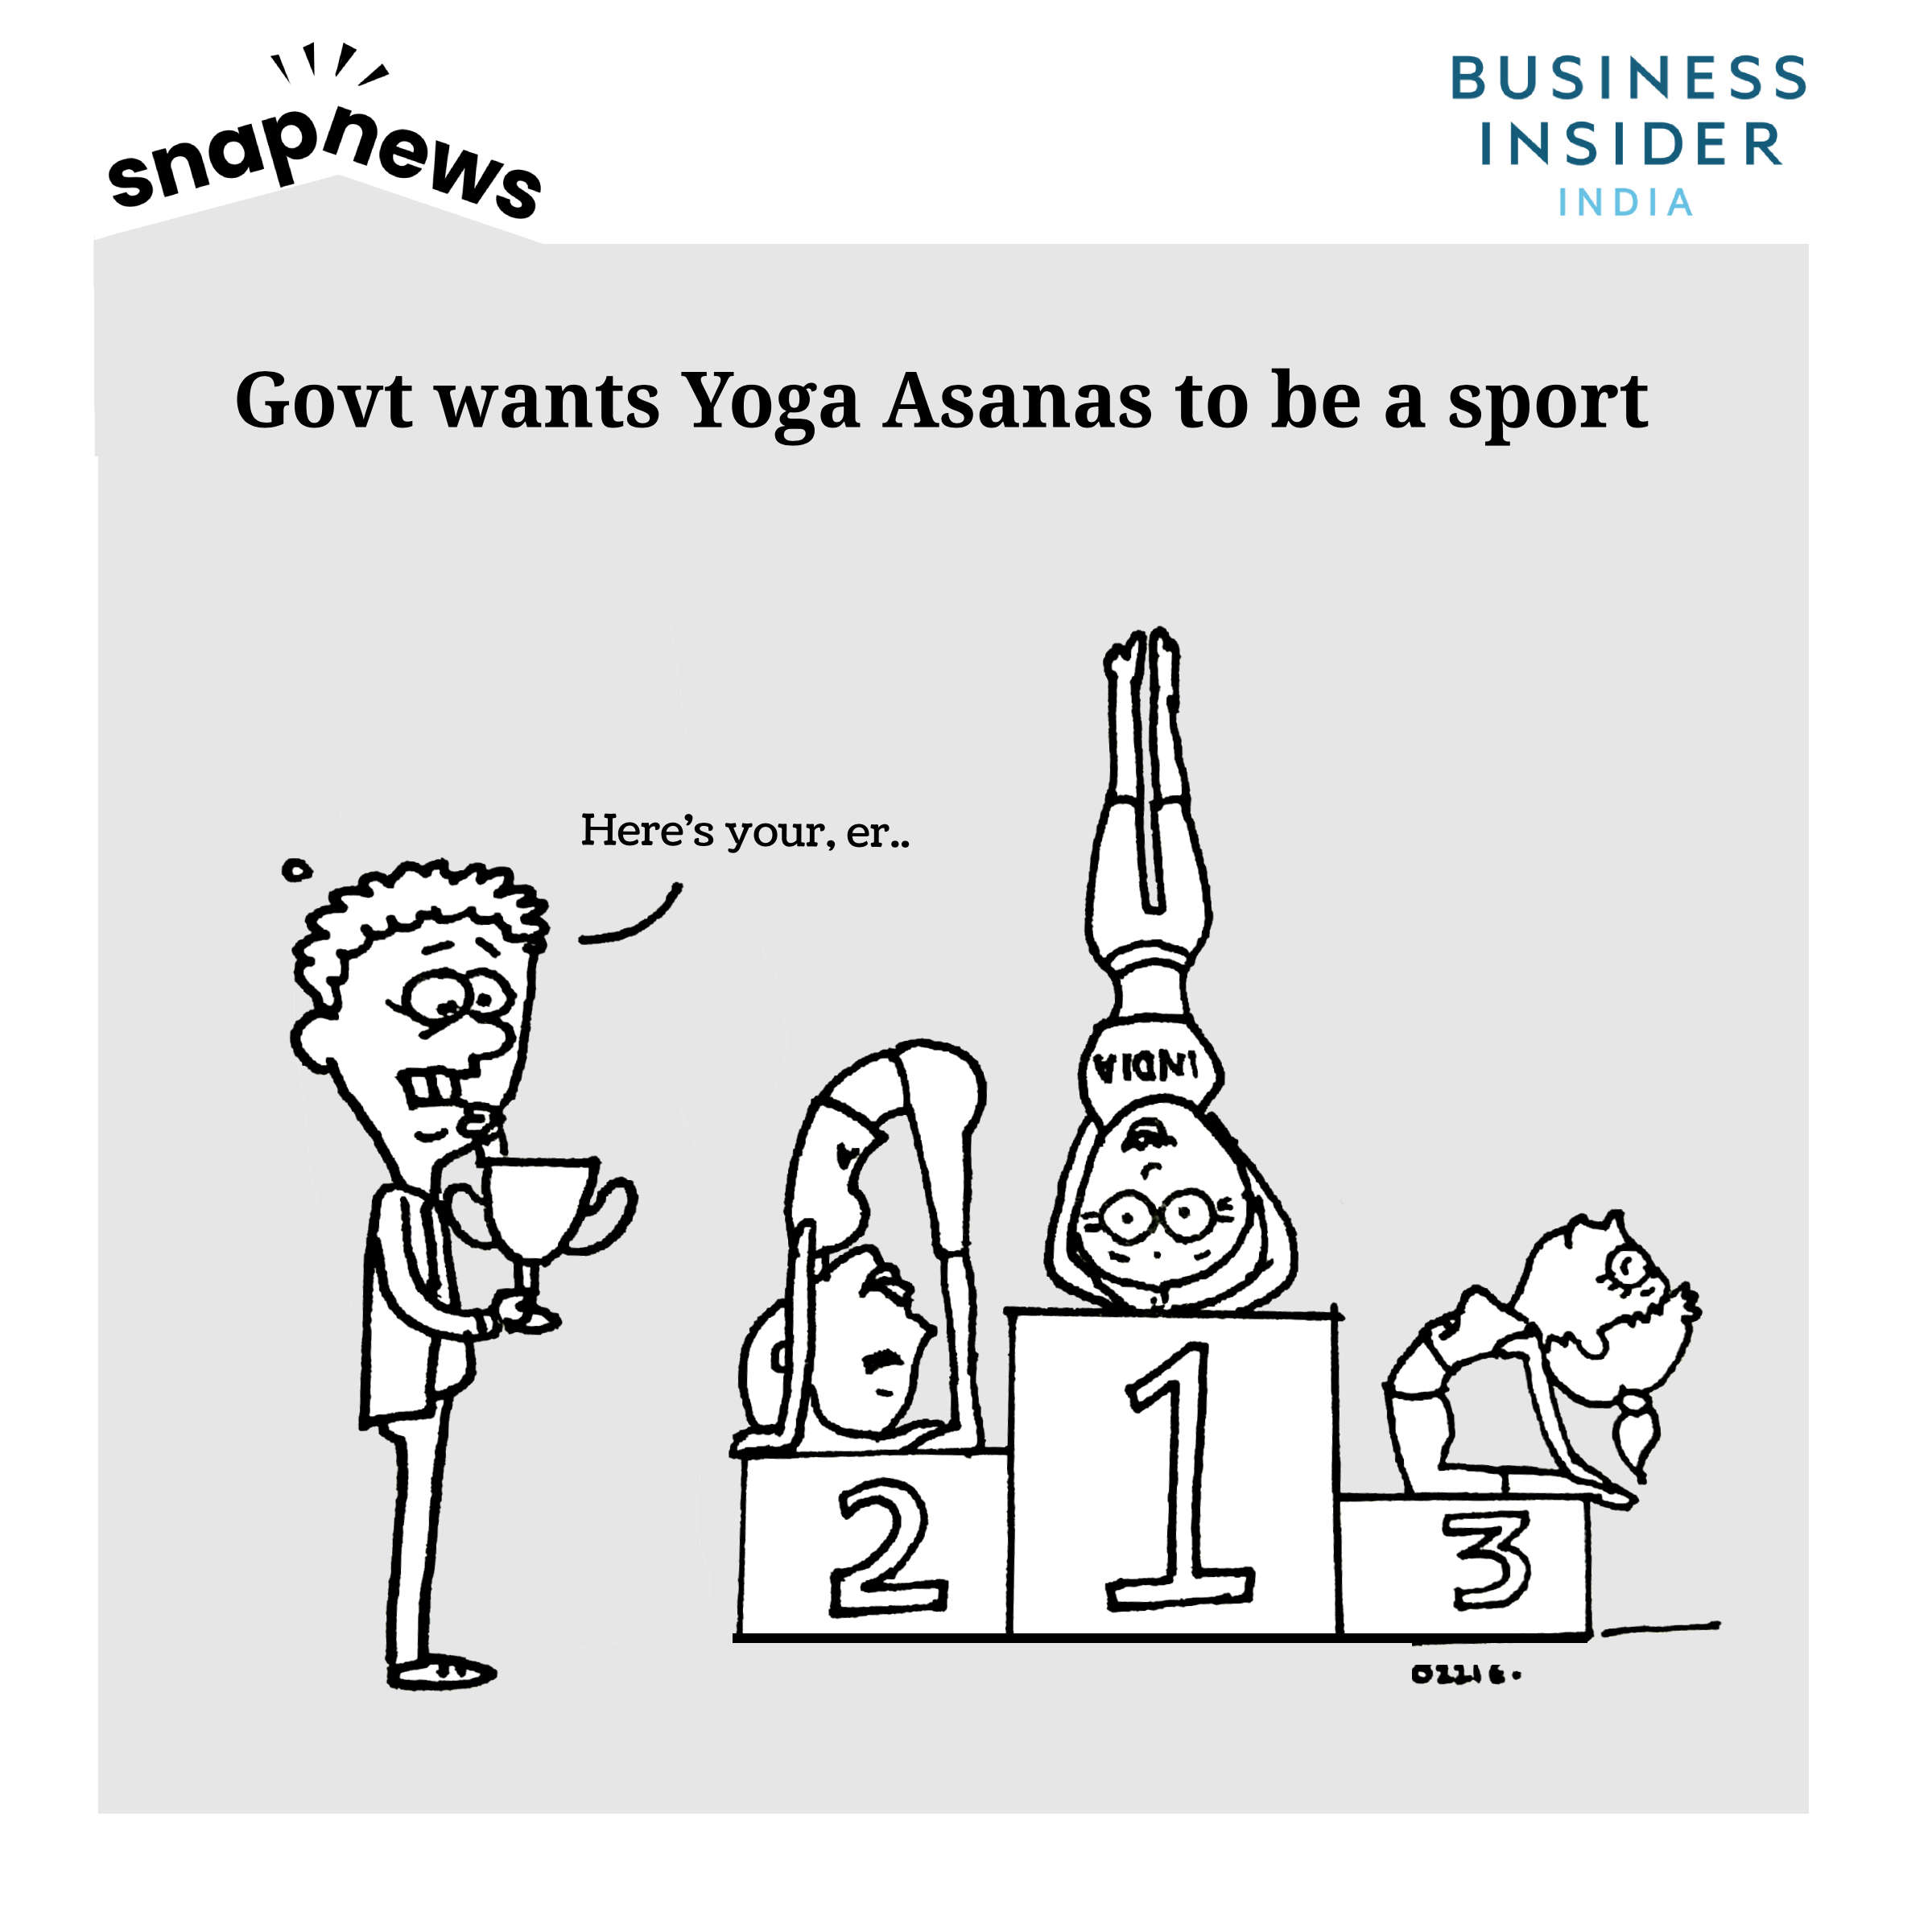 Indian government wants Yoga asanas to be a sport, and